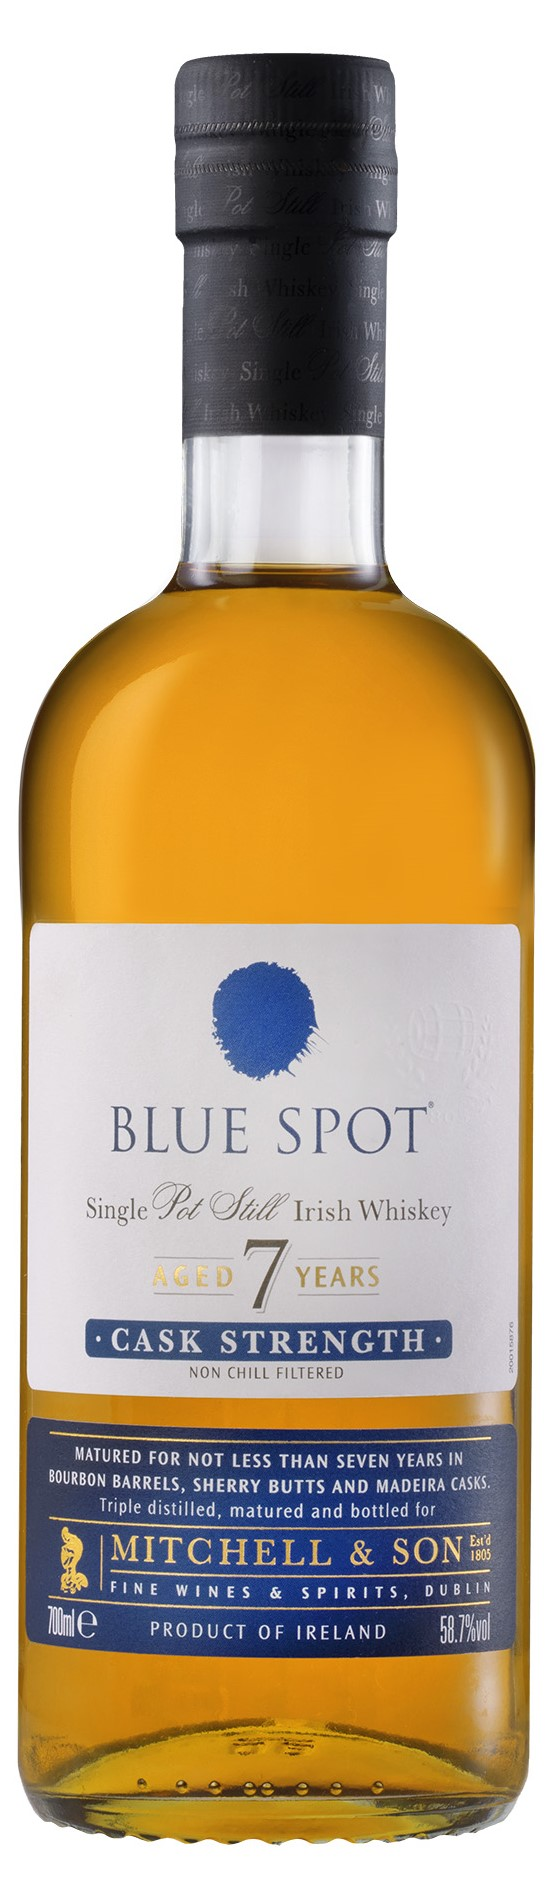 The Dramble reviews Blue Spot whiskey